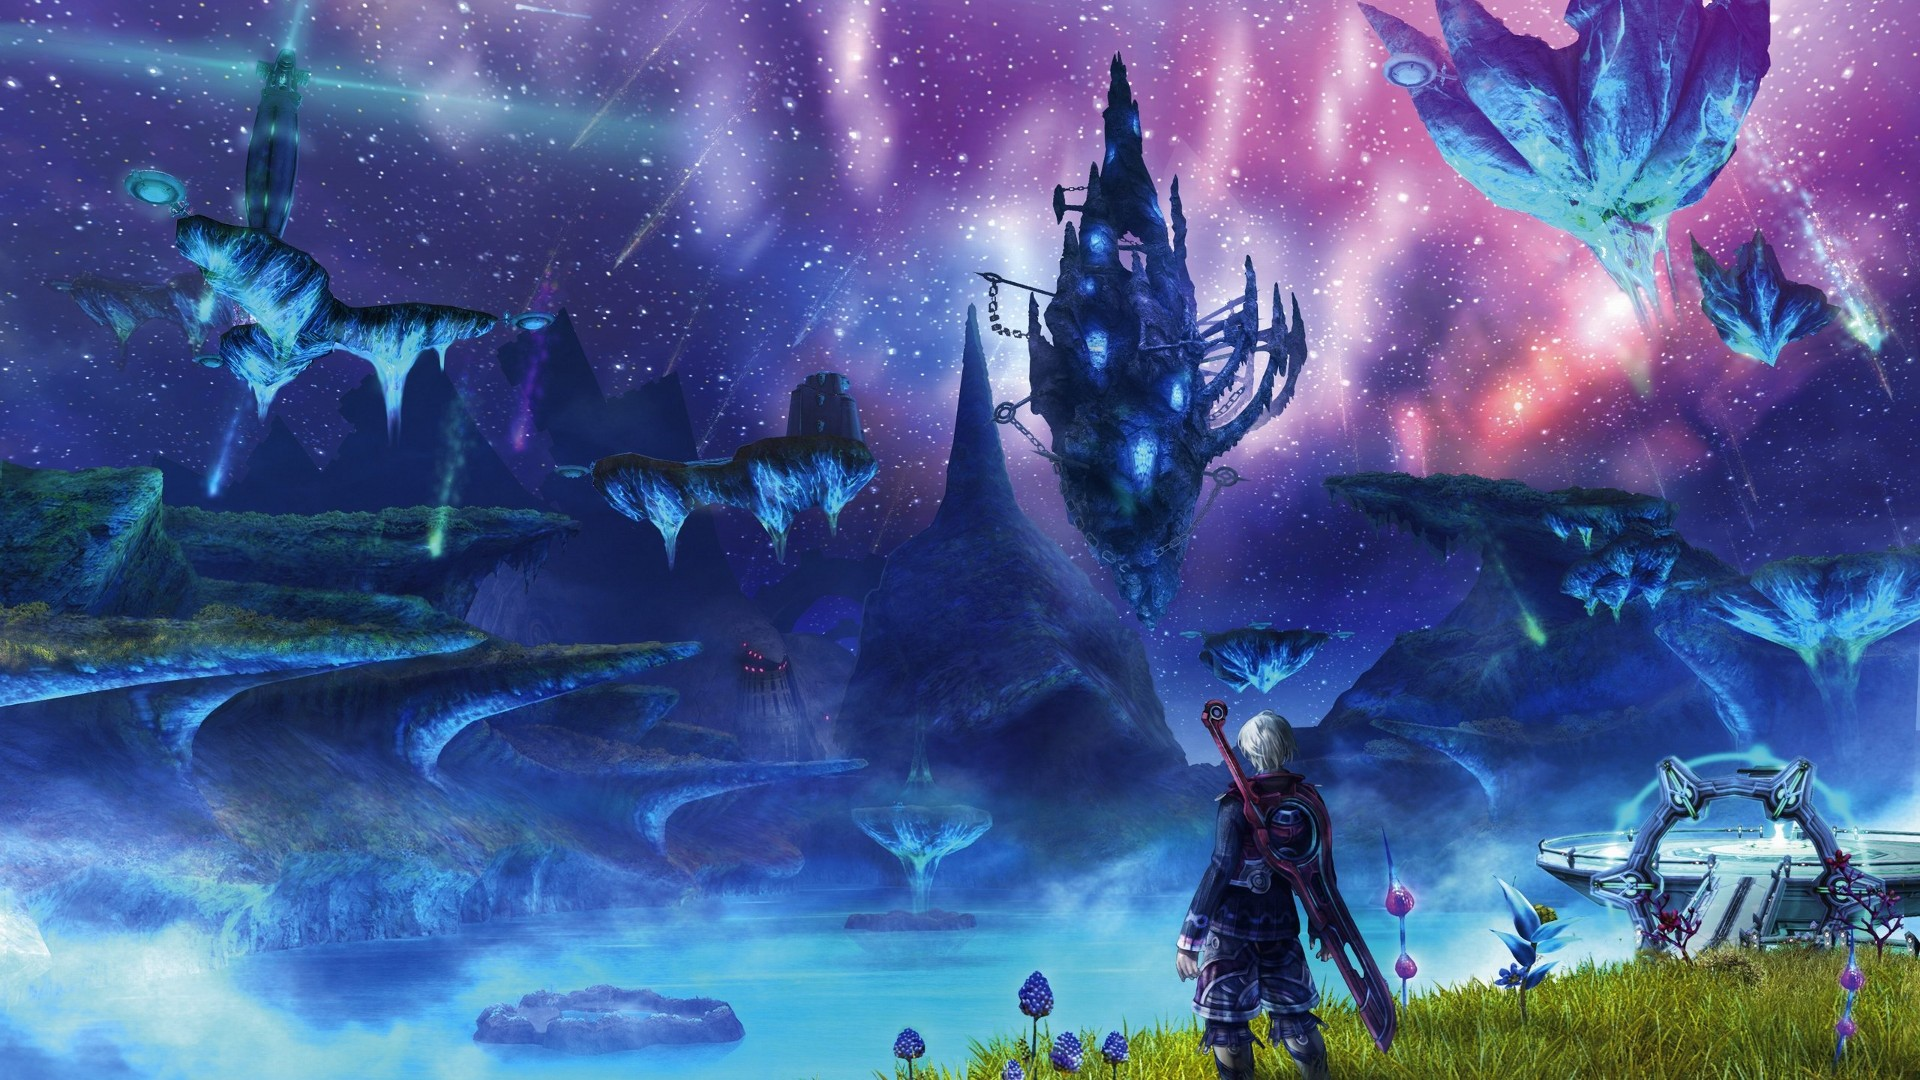 Xenoblade Chronicles Wallpaper For Pc